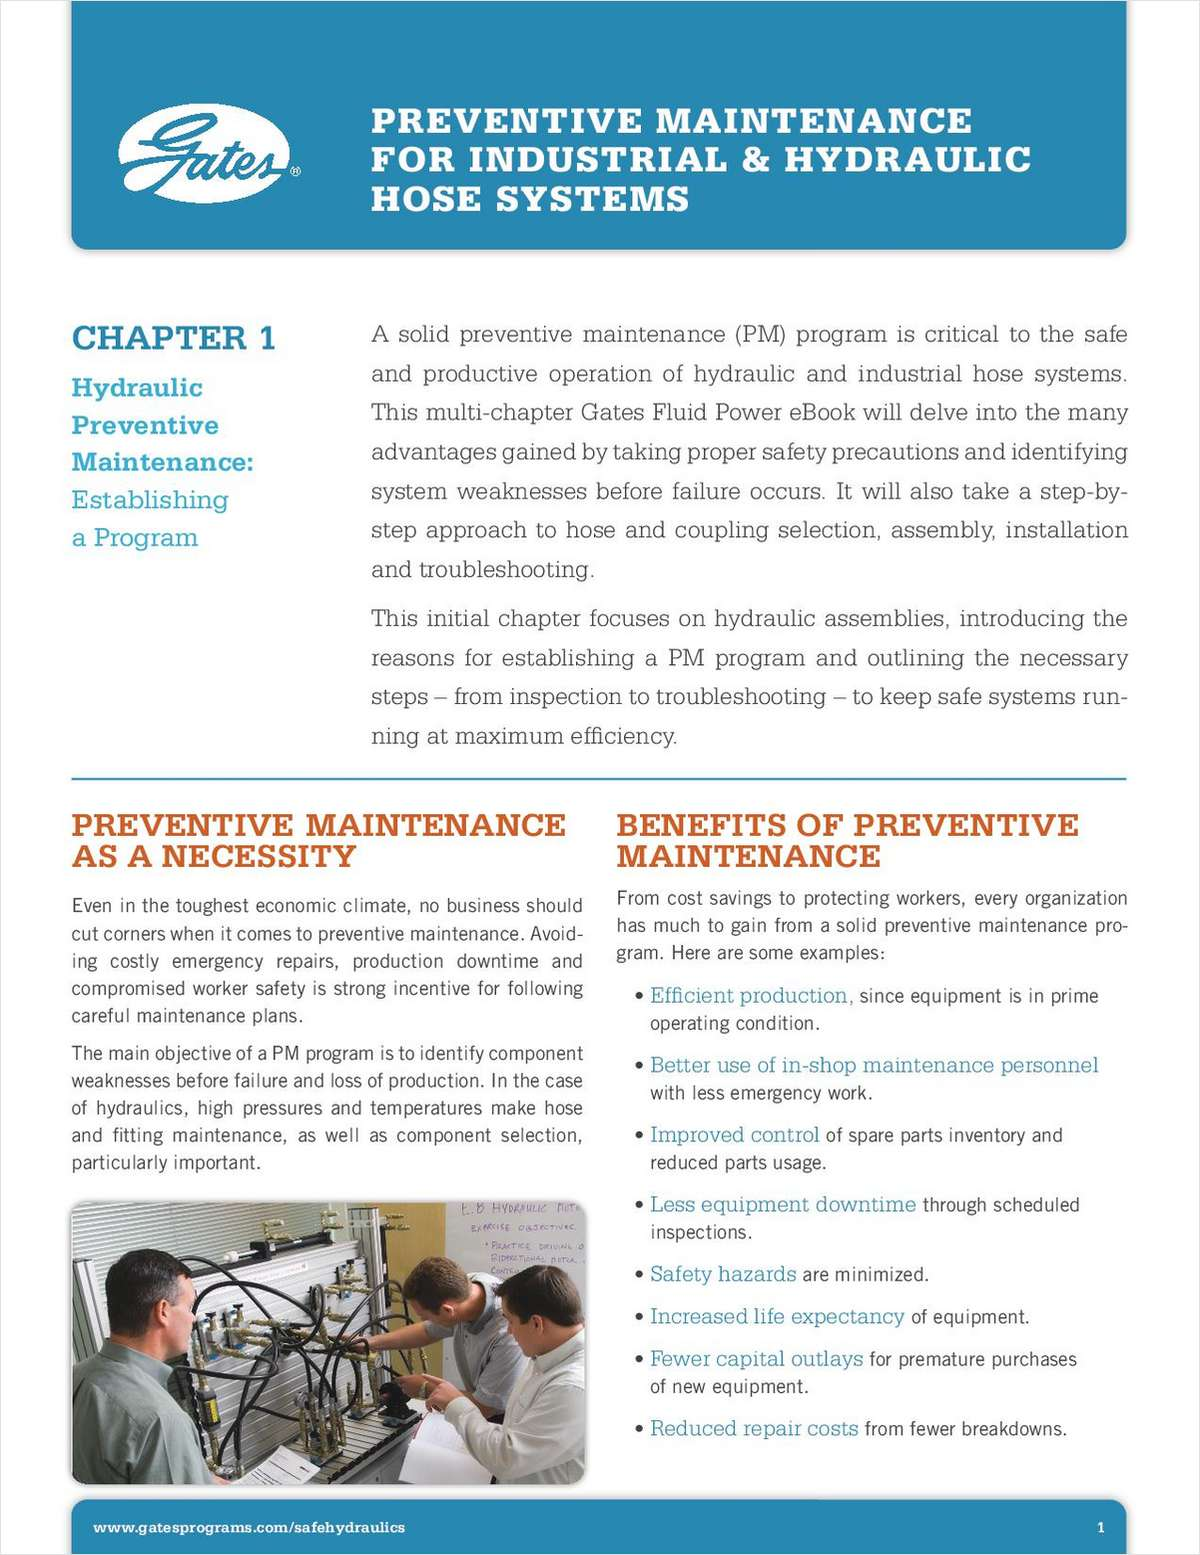 Preventive Maintenance for Industrial & Hydraulic Hose Systems